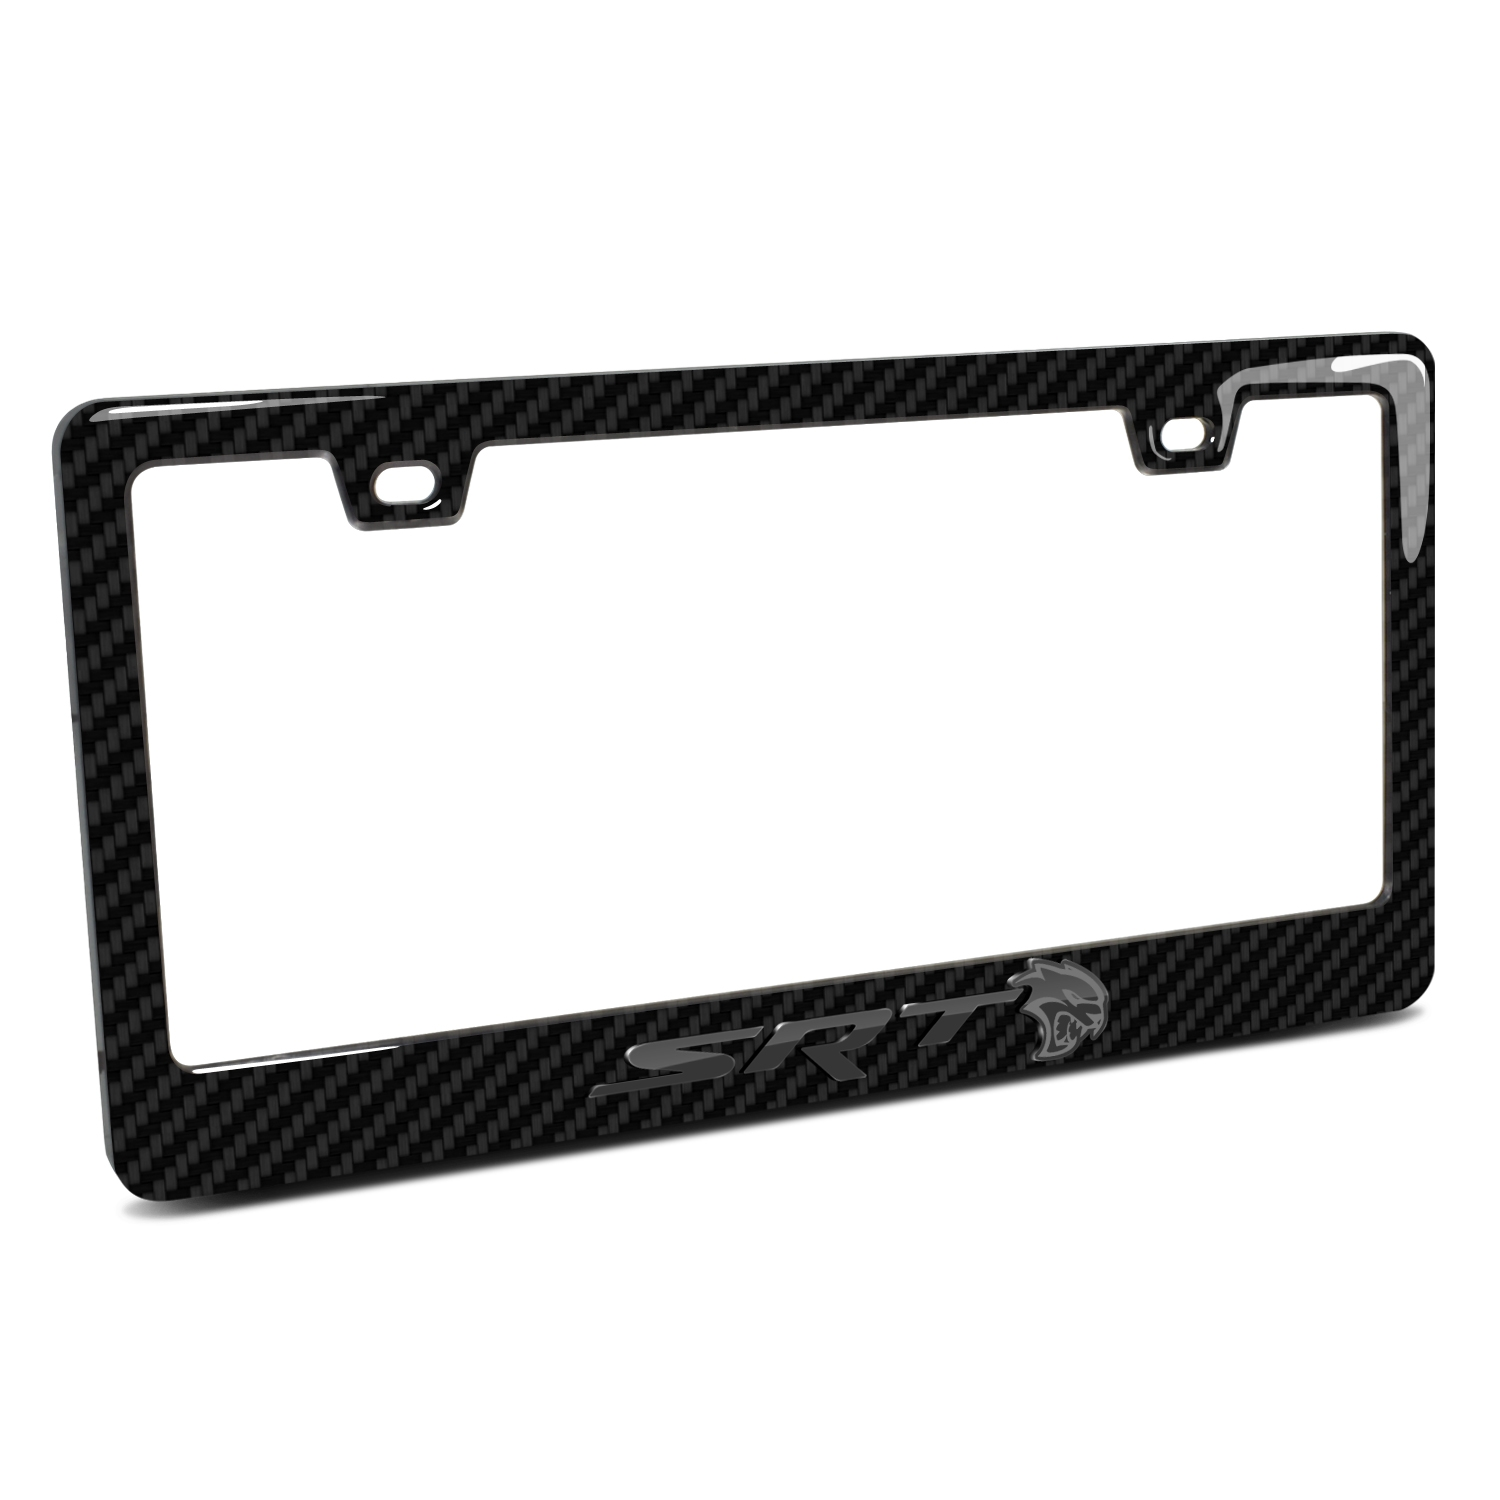 Dodge SRT Hellcat in 3D Black on Black Real 3K Carbon Fiber Finish ABS Plastic License Plate Frame